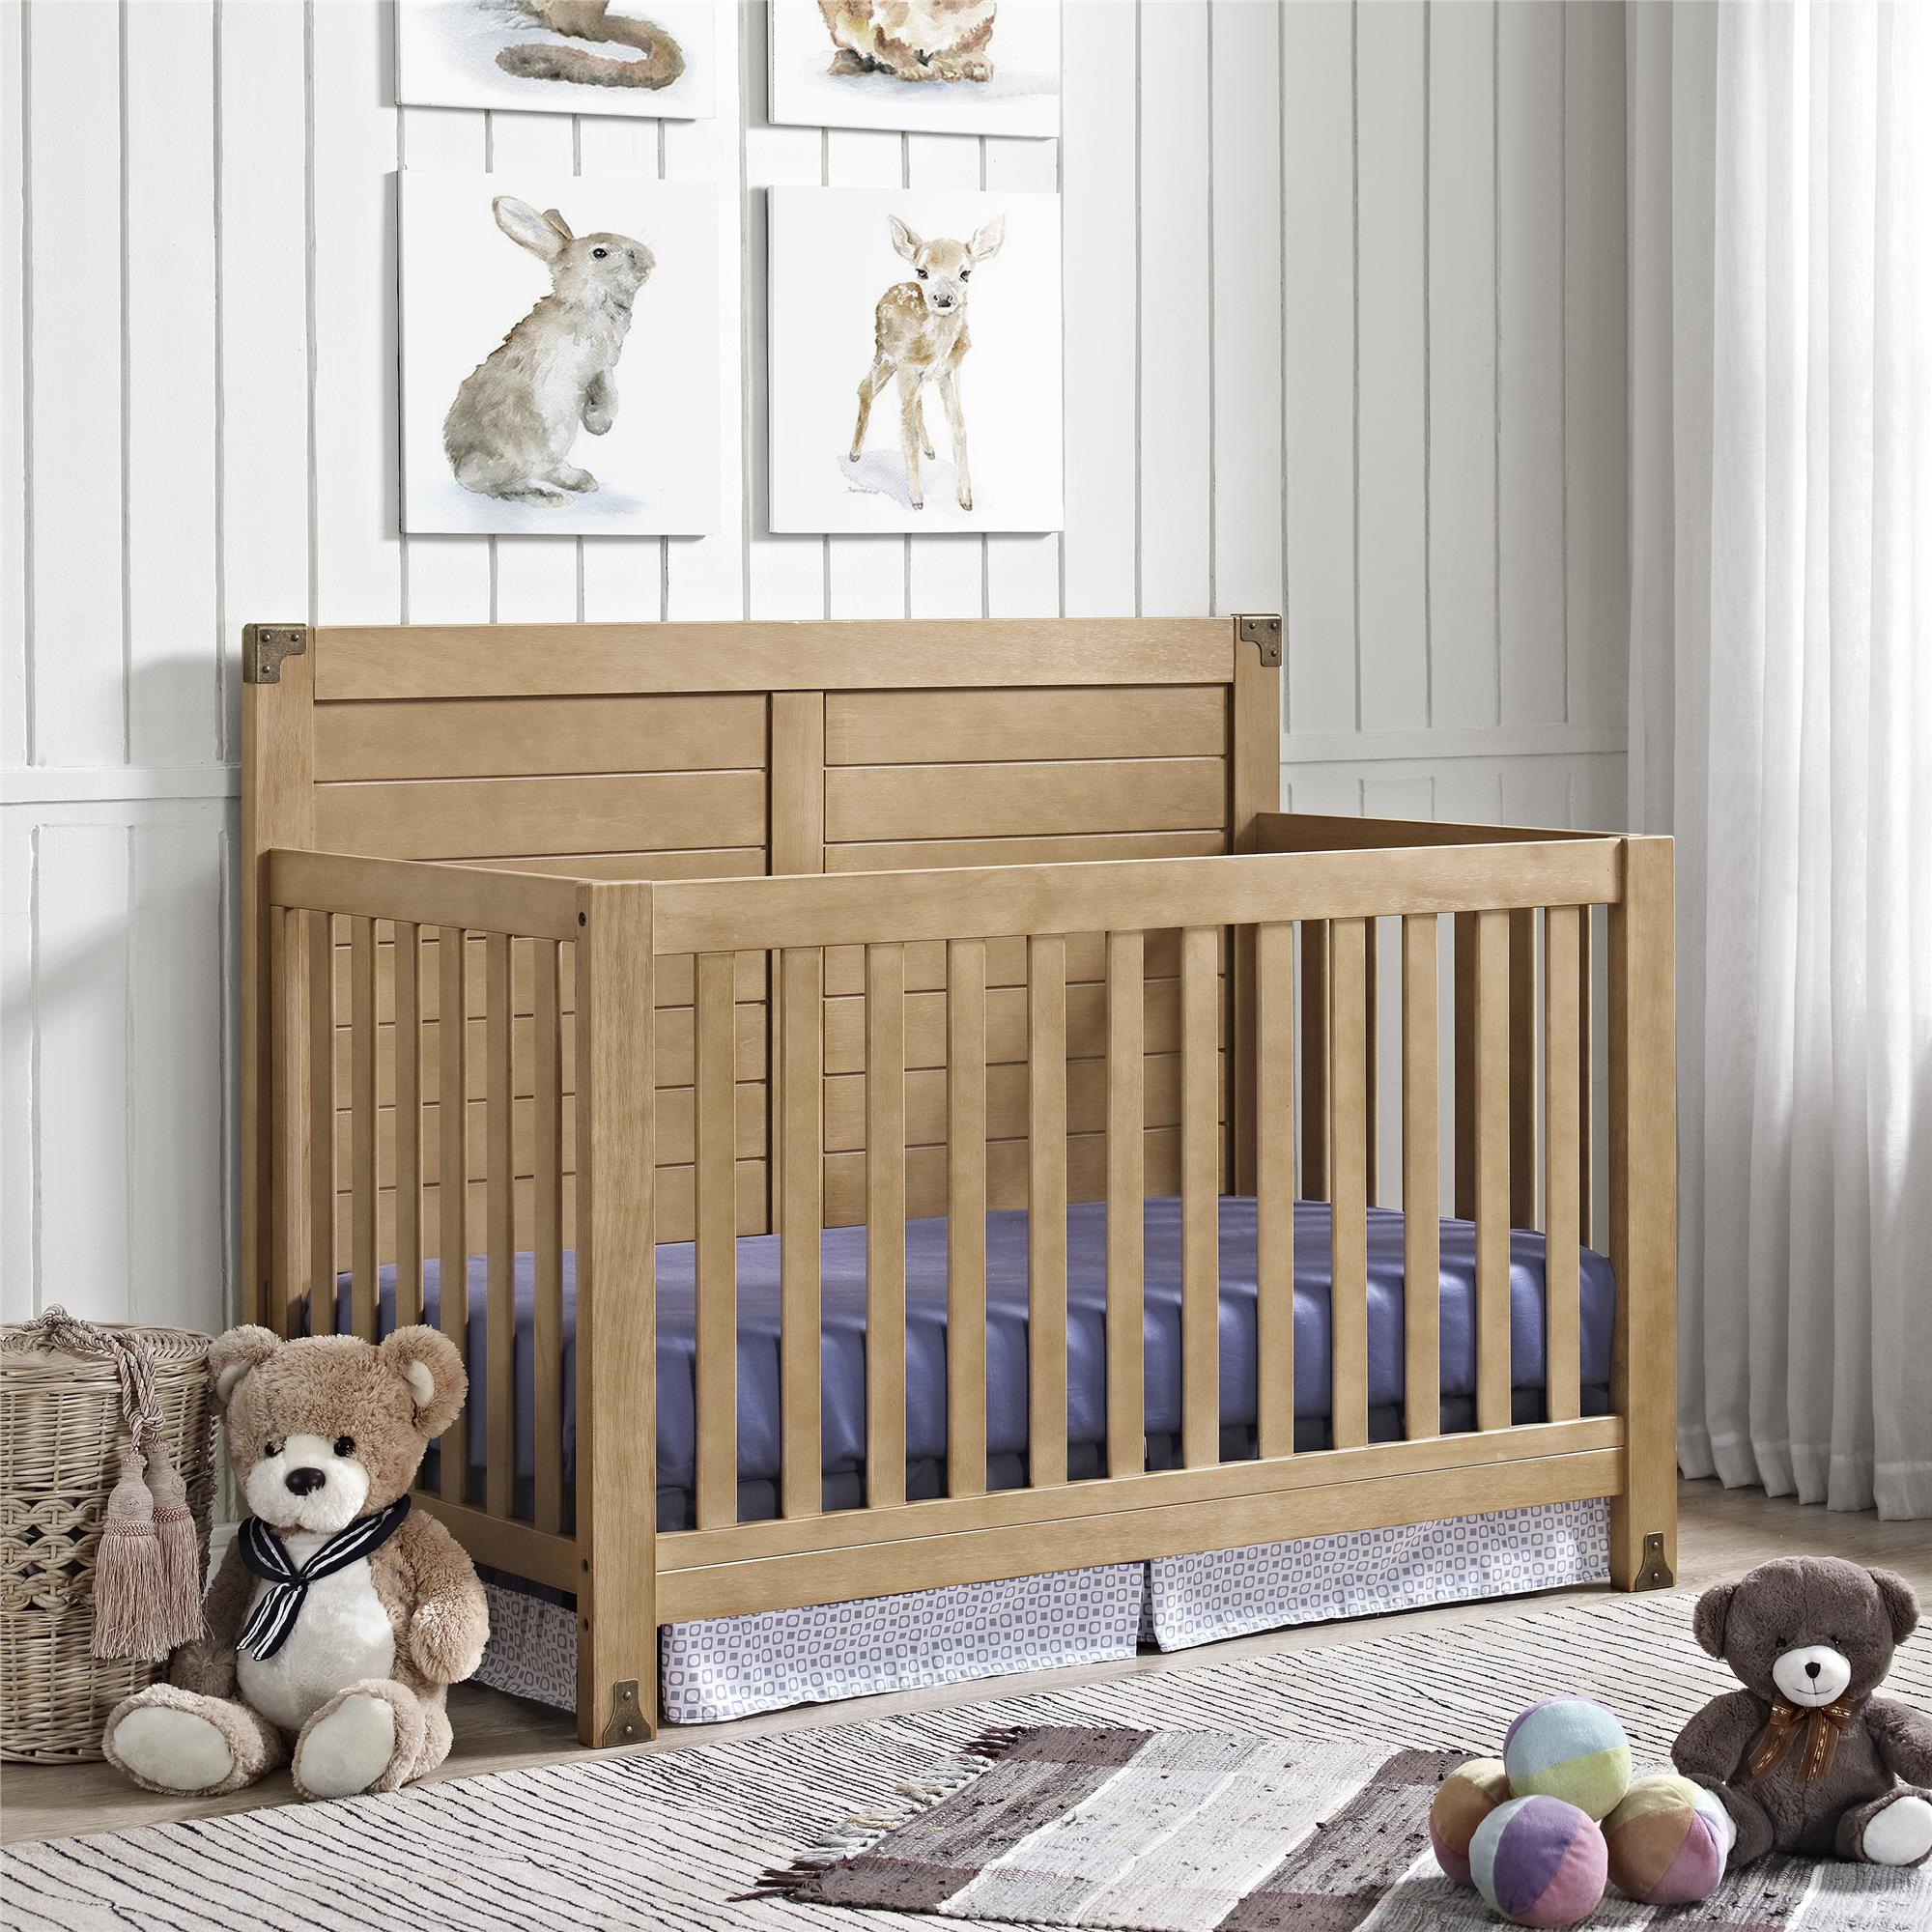 Baby Relax Ridgeline 4-in-1 Convertible Crib, Rustic Natural